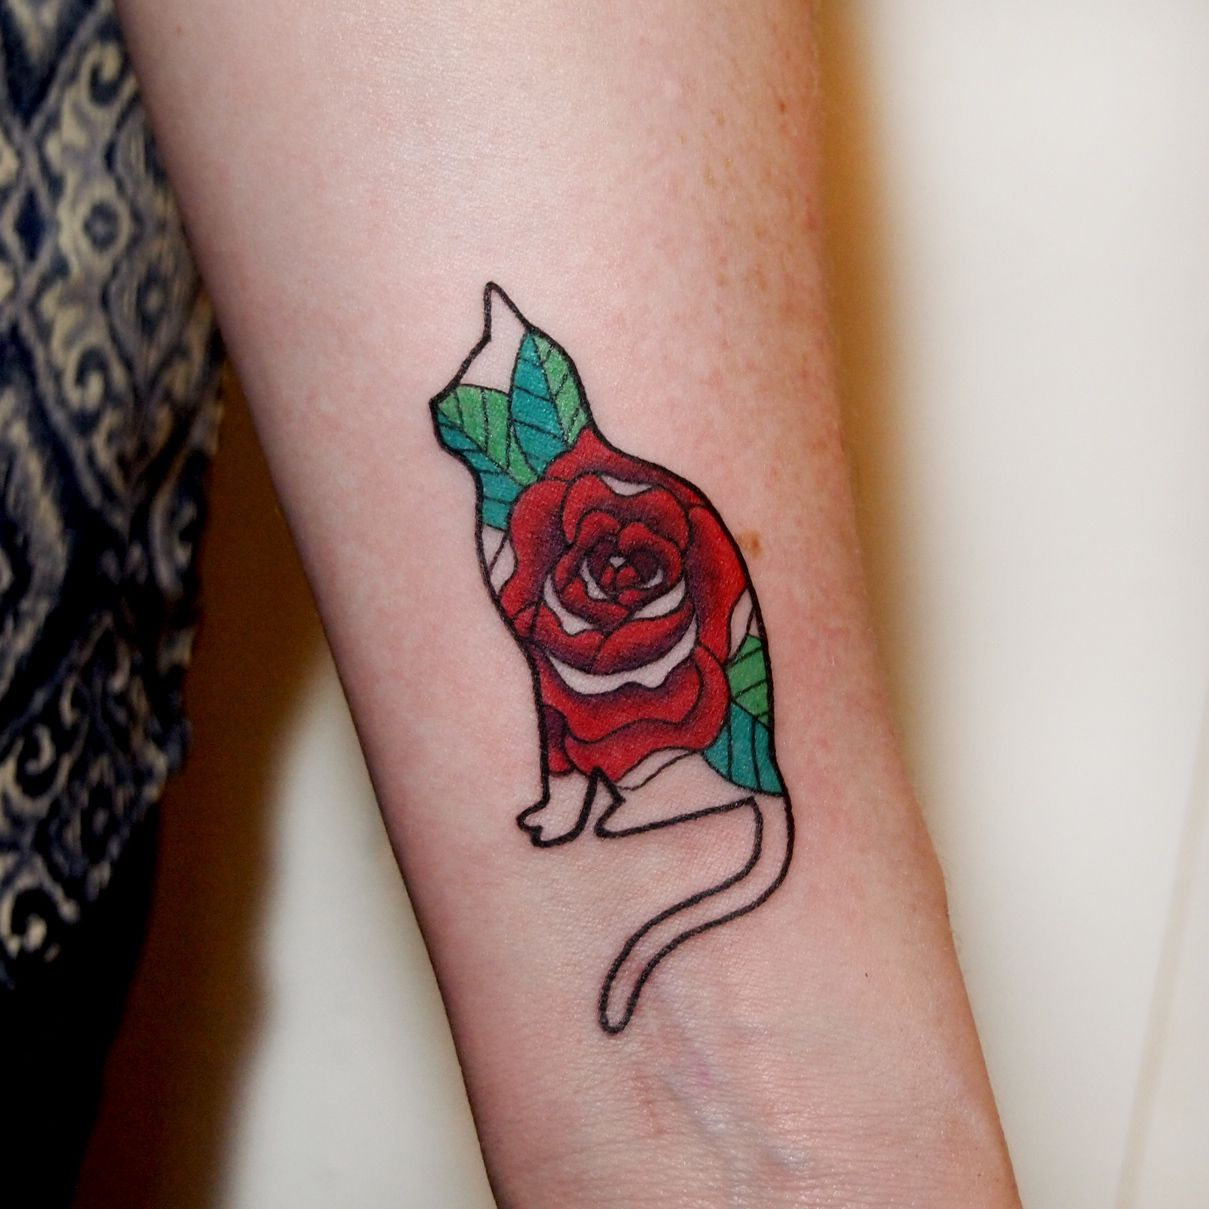 Rose Cat by Jessica Channer at Tattoo People, Toronto ON -------- As much as I love the cat, is there a different shape that would work as an in memorium better?